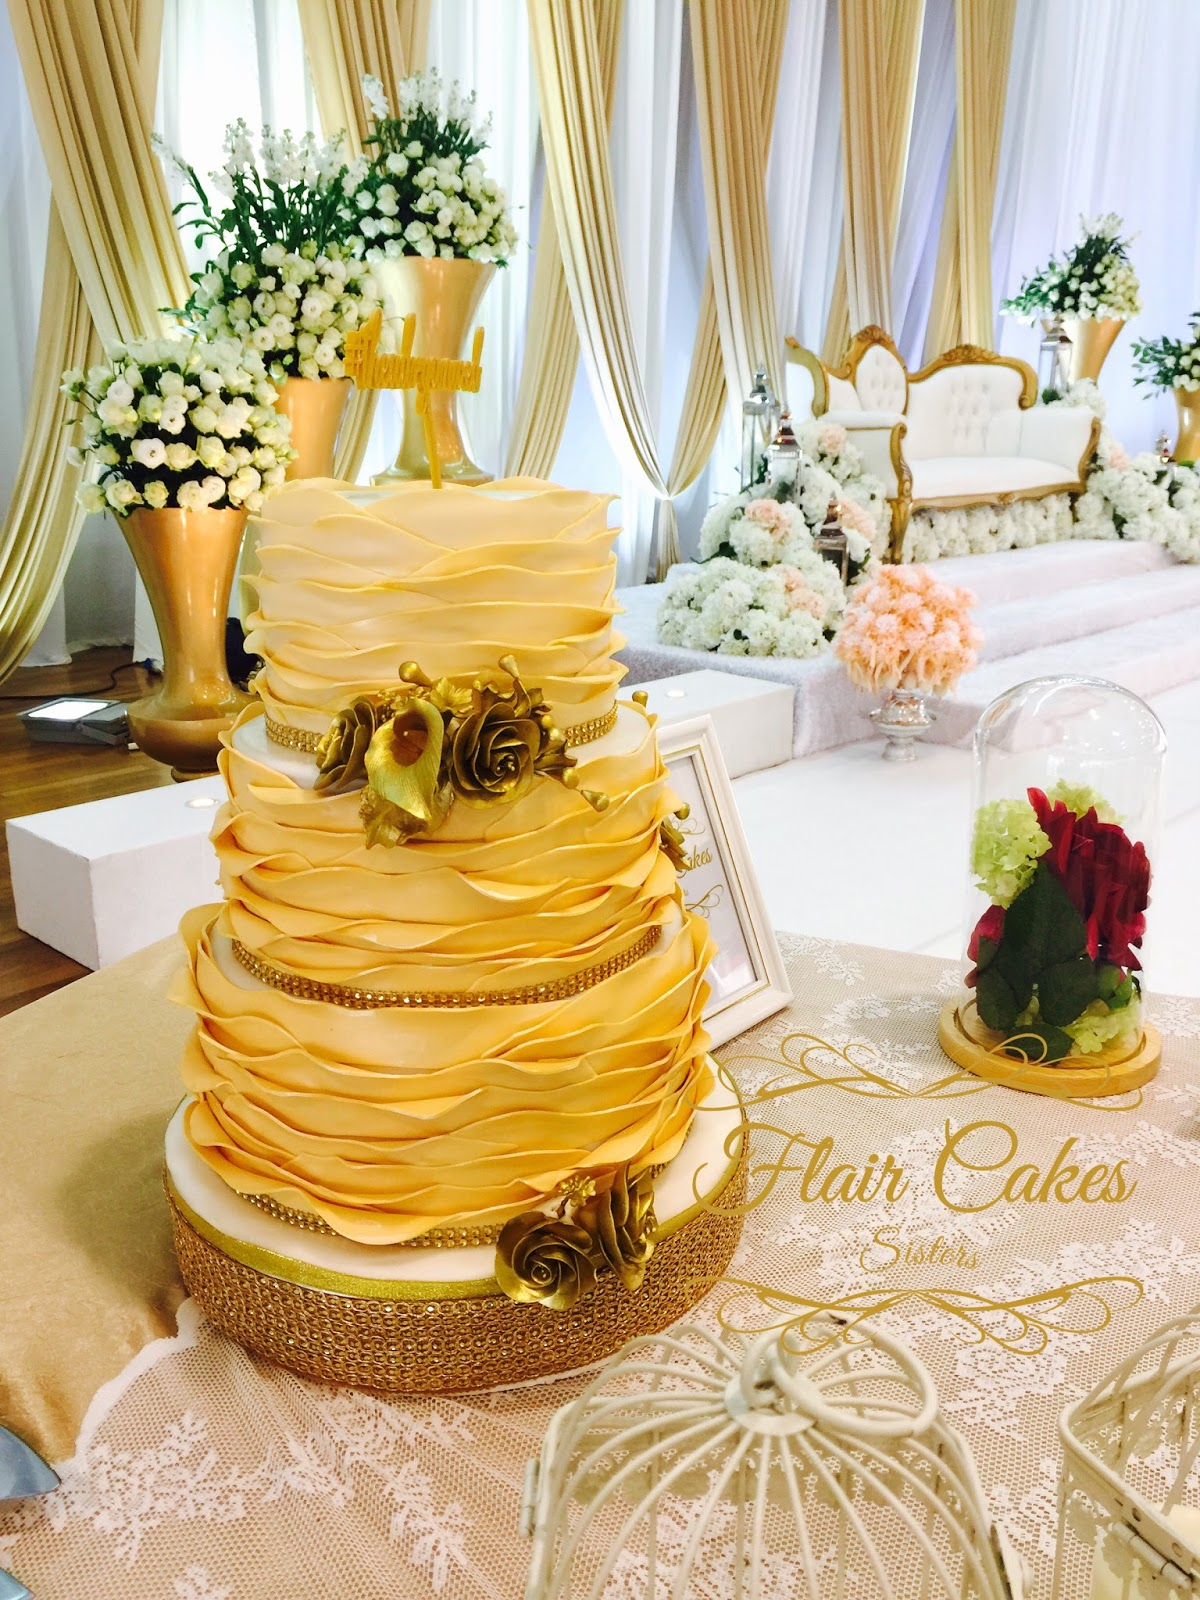 Flair Cakes Sisters: 2016